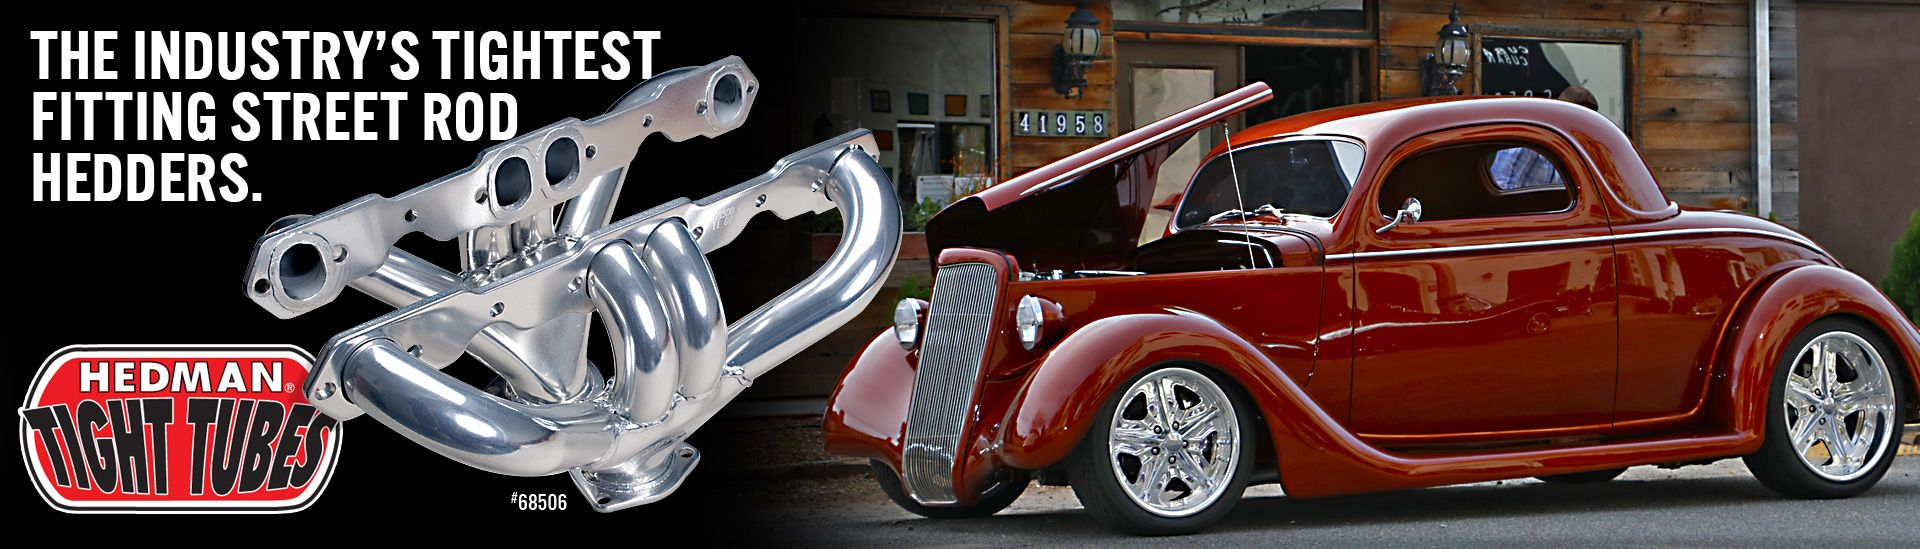 Tight Tube Street Rod Headers